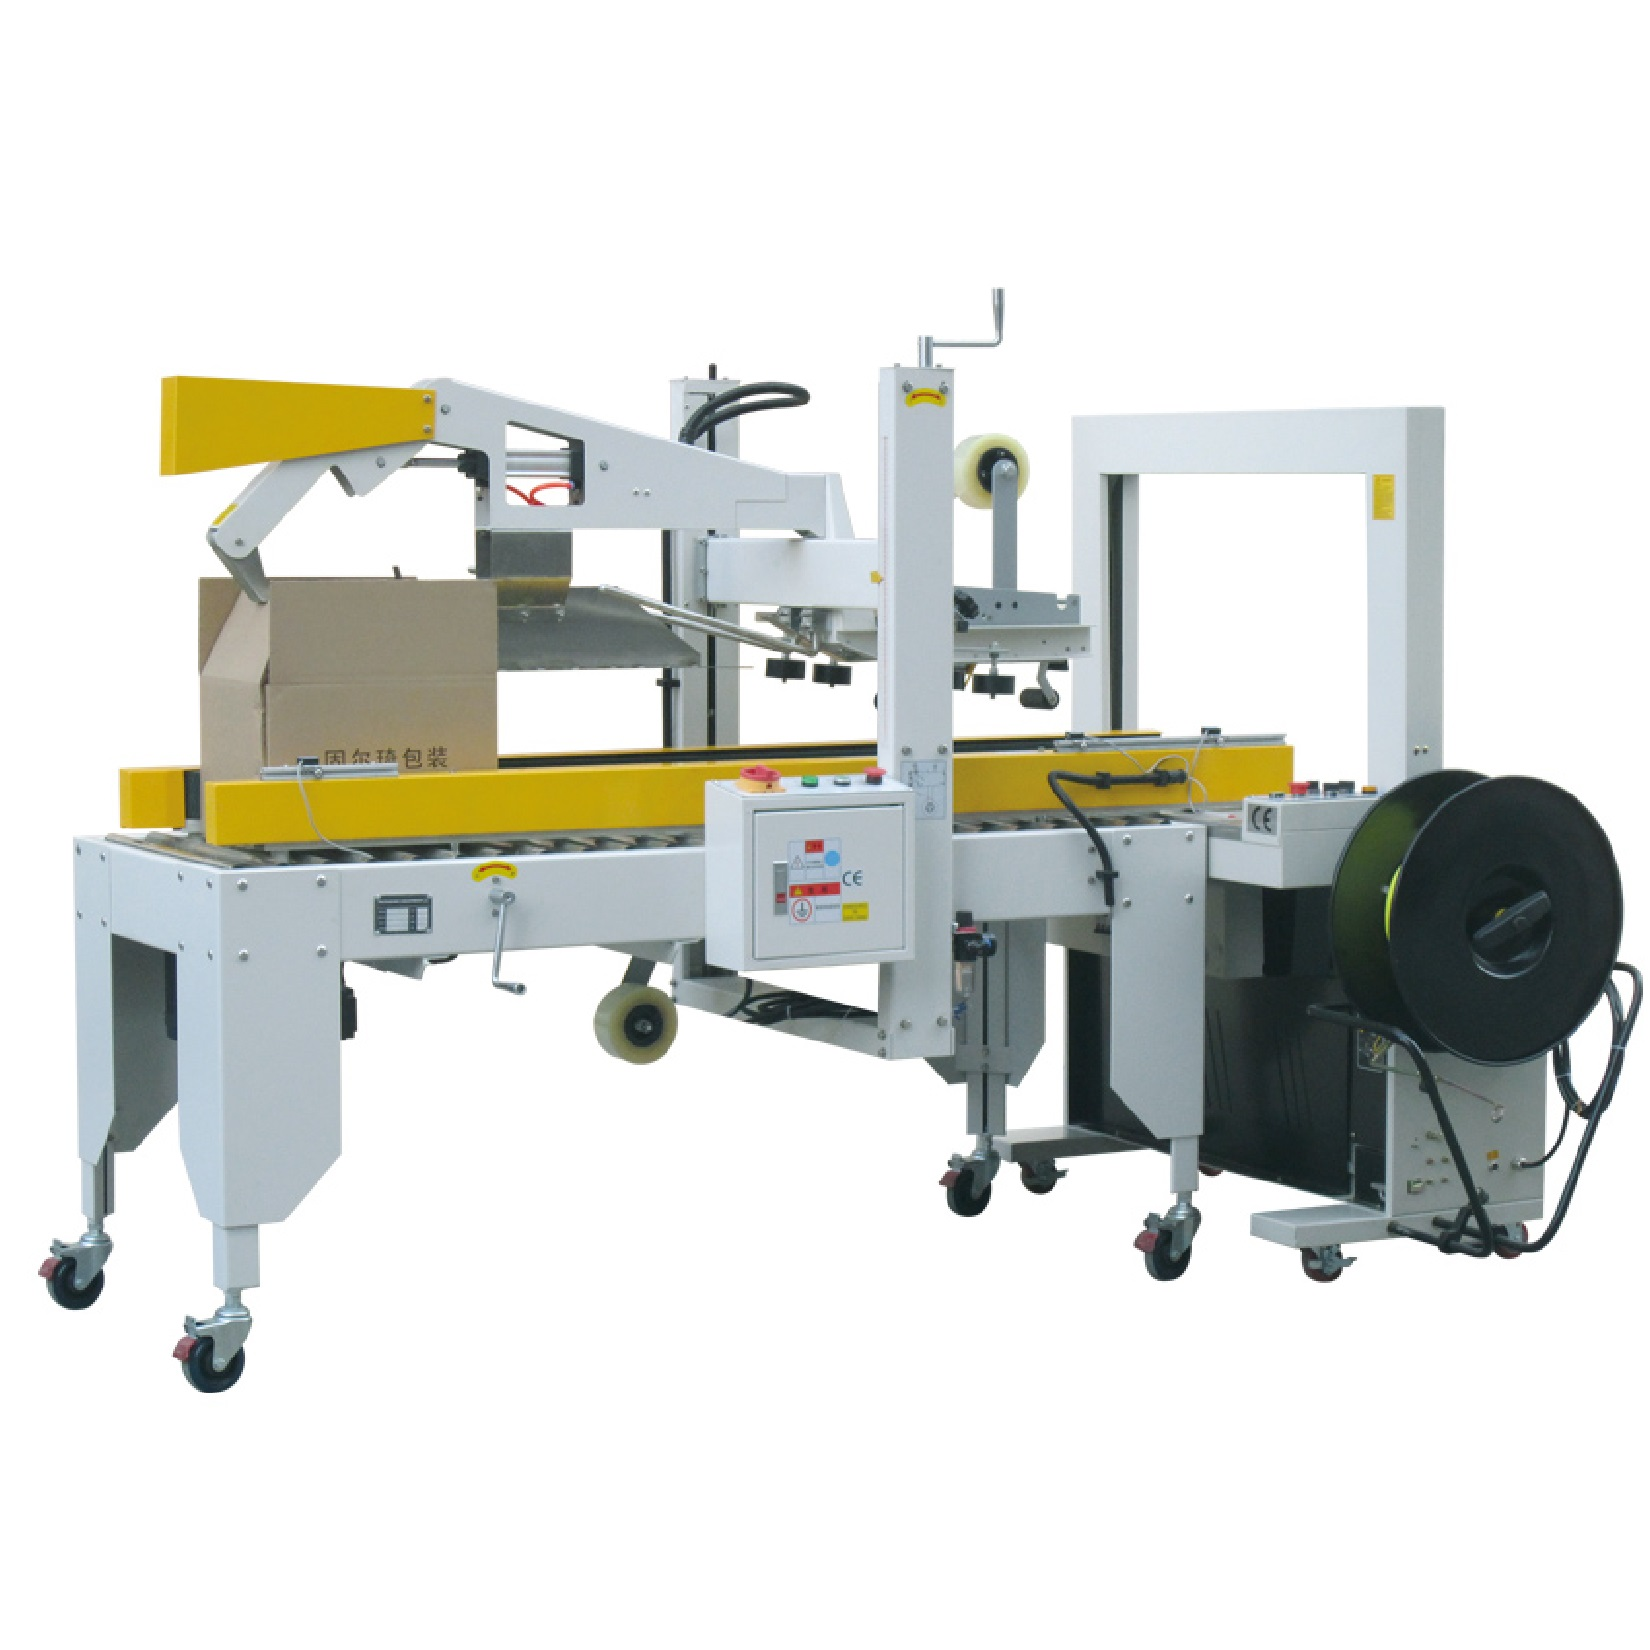 Carton sealer and strapping – OCSS-50I